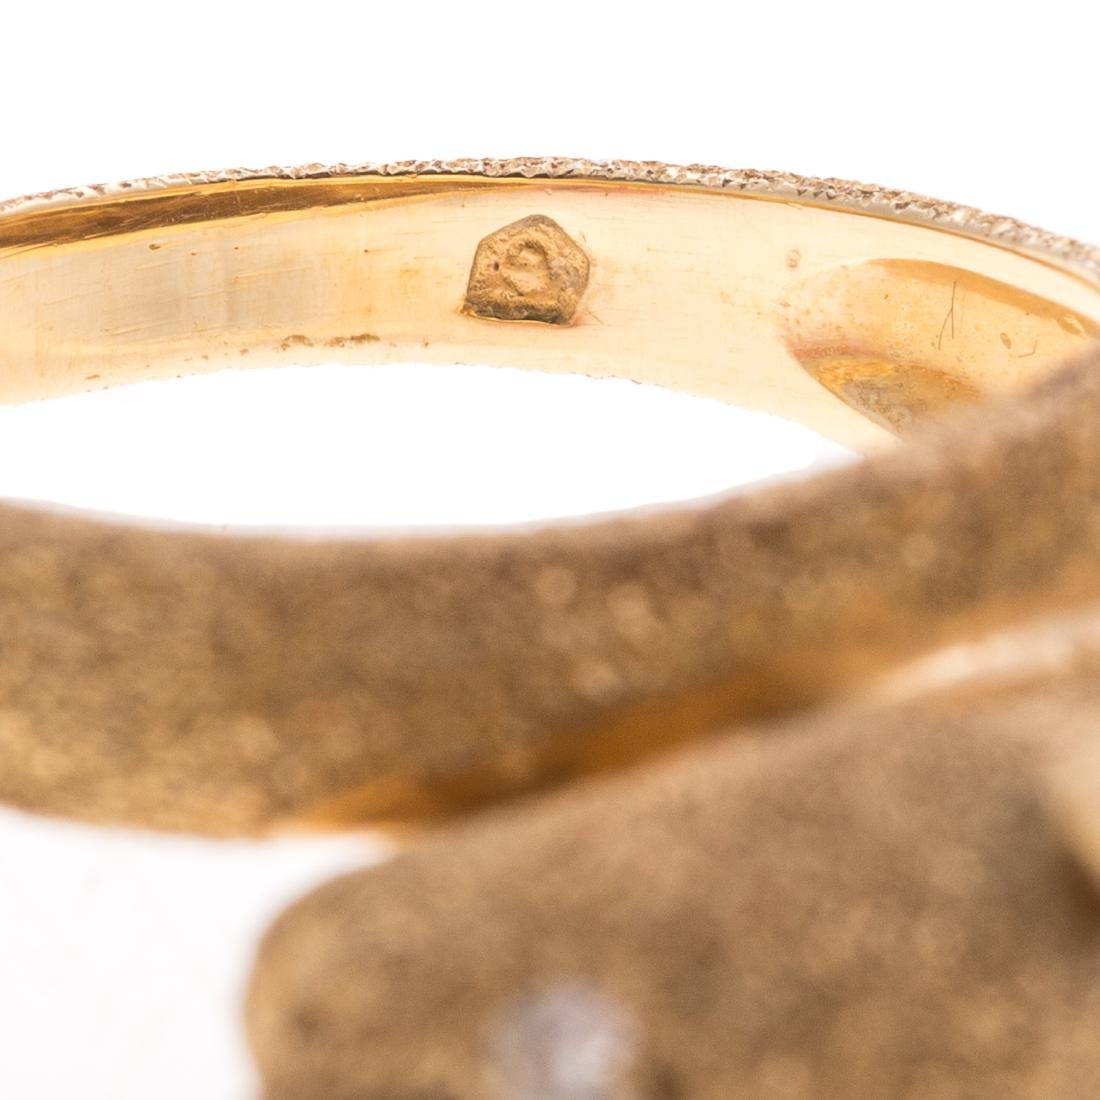 A Lady's 14K Panther Ring with Diamond Eyes - 5